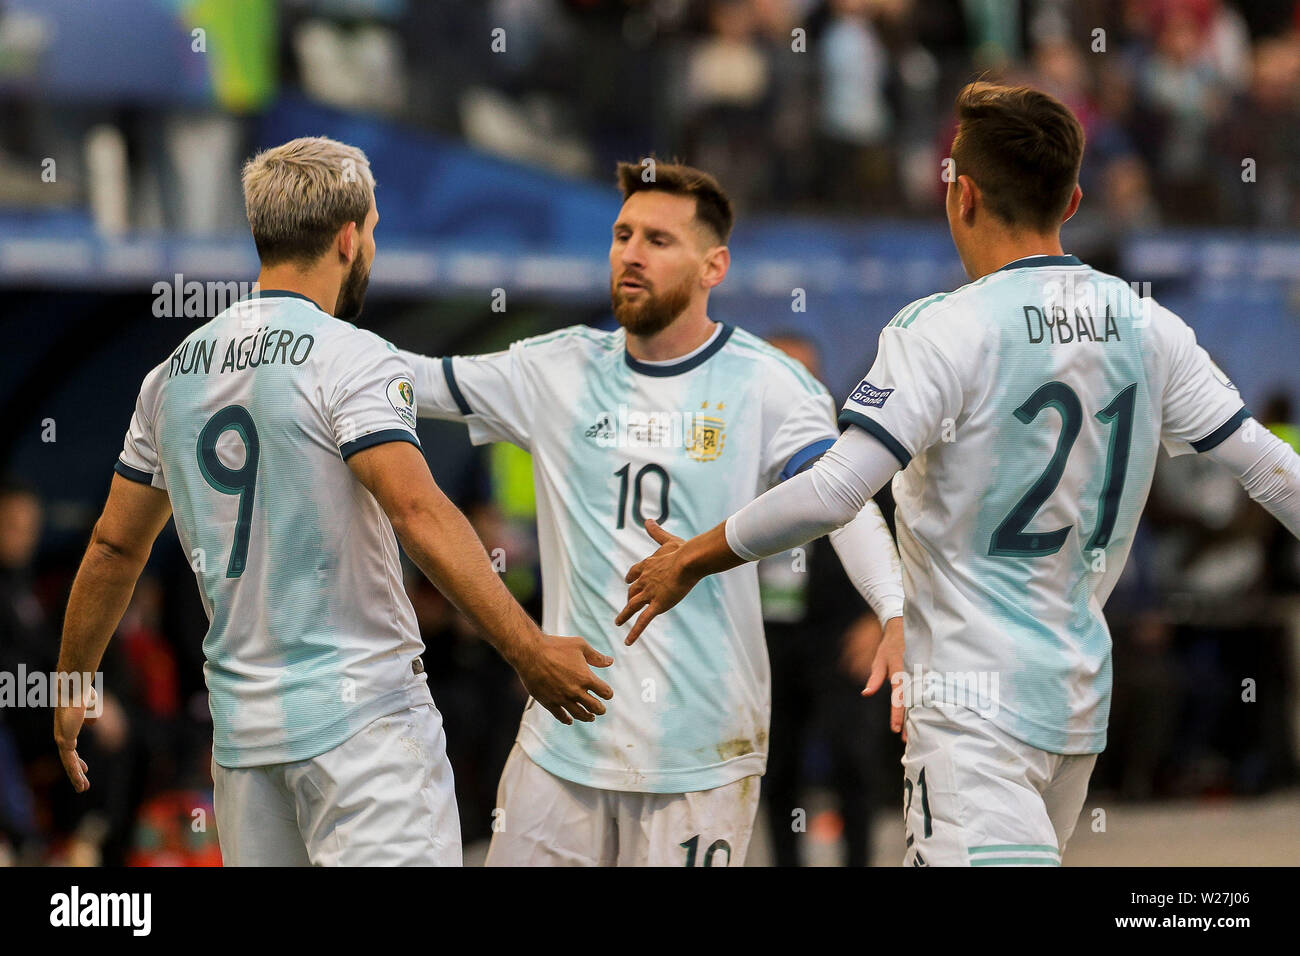 6th July 2019, Arena Corinthians Stadium, Sao Paulo, Brazil; Copa America international football, 3rd-4th playoff final, Argentina versus Chile; Sergio Agüero of Argentina celebrates his goal for 1-0 in the 12th minute with Lionel Messi 1-0 - Stock Image